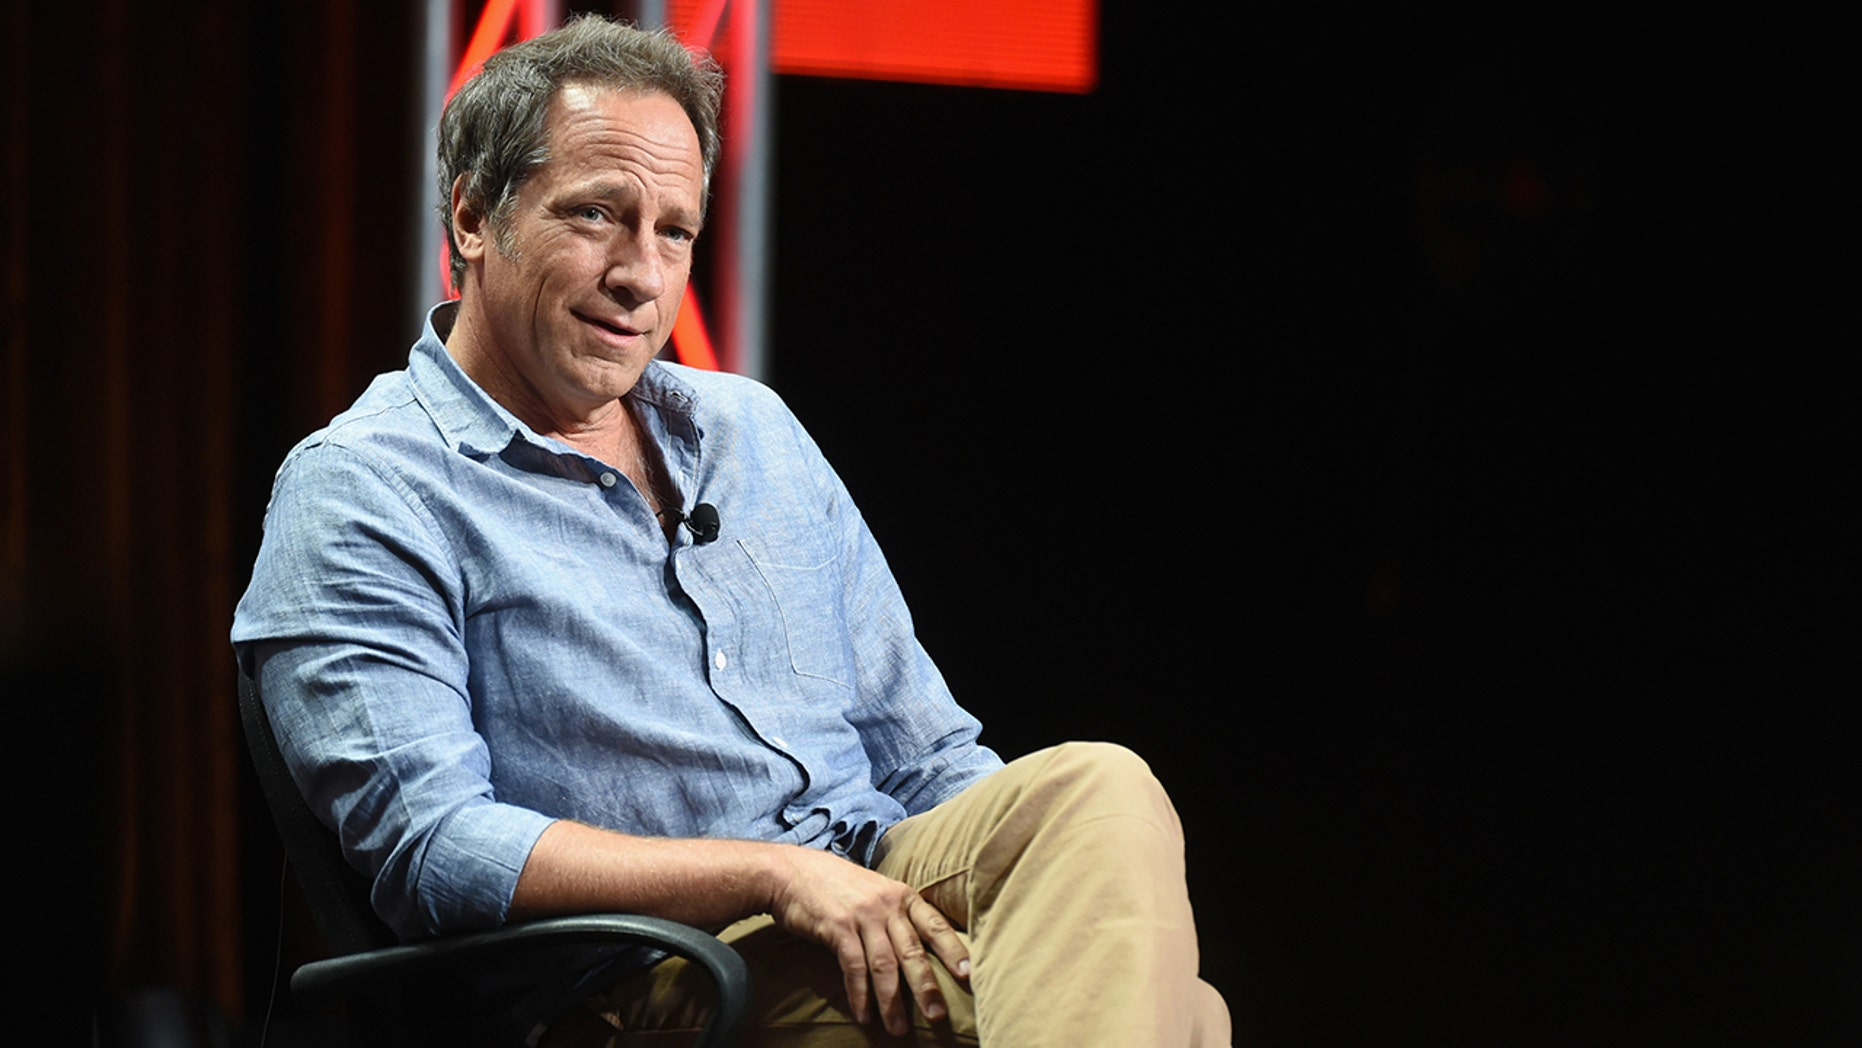 "LOS ANGELES, CA - JULY 10:  Actor Mike Rowe speaks during the ""Somebody's Gotta Do It"" portion of the 2014 TCA Turner Broadcasting Summer Press Tour Presentation at The Beverly Hilton on July 10, 2014 in Los Angeles, California.  (Photo by Michael Buckner/WireImage)"